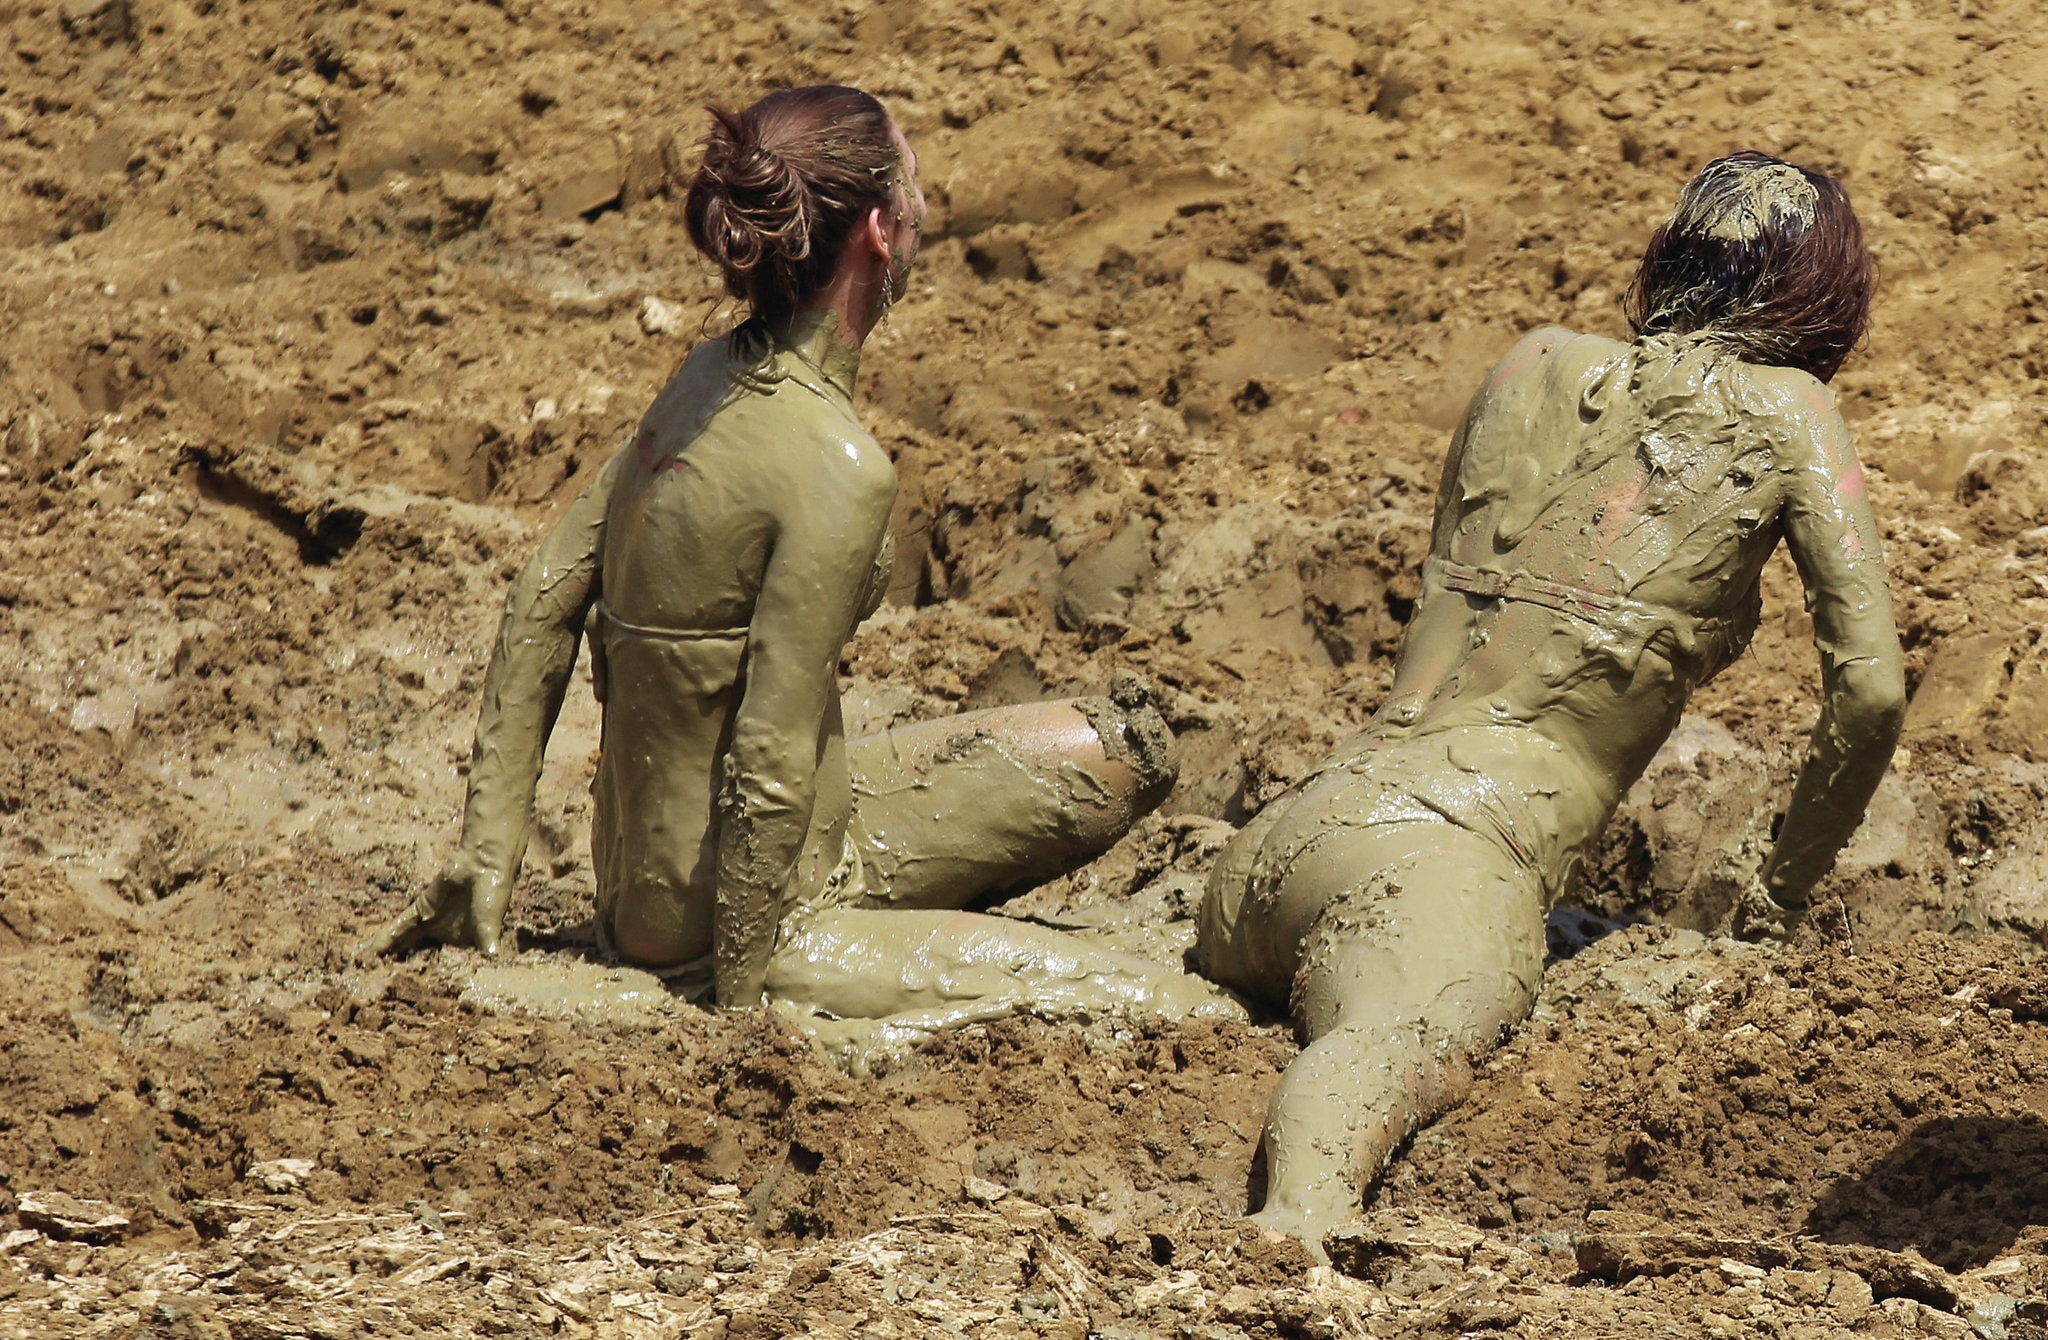 Mud Girls In Mud Photo 74833690